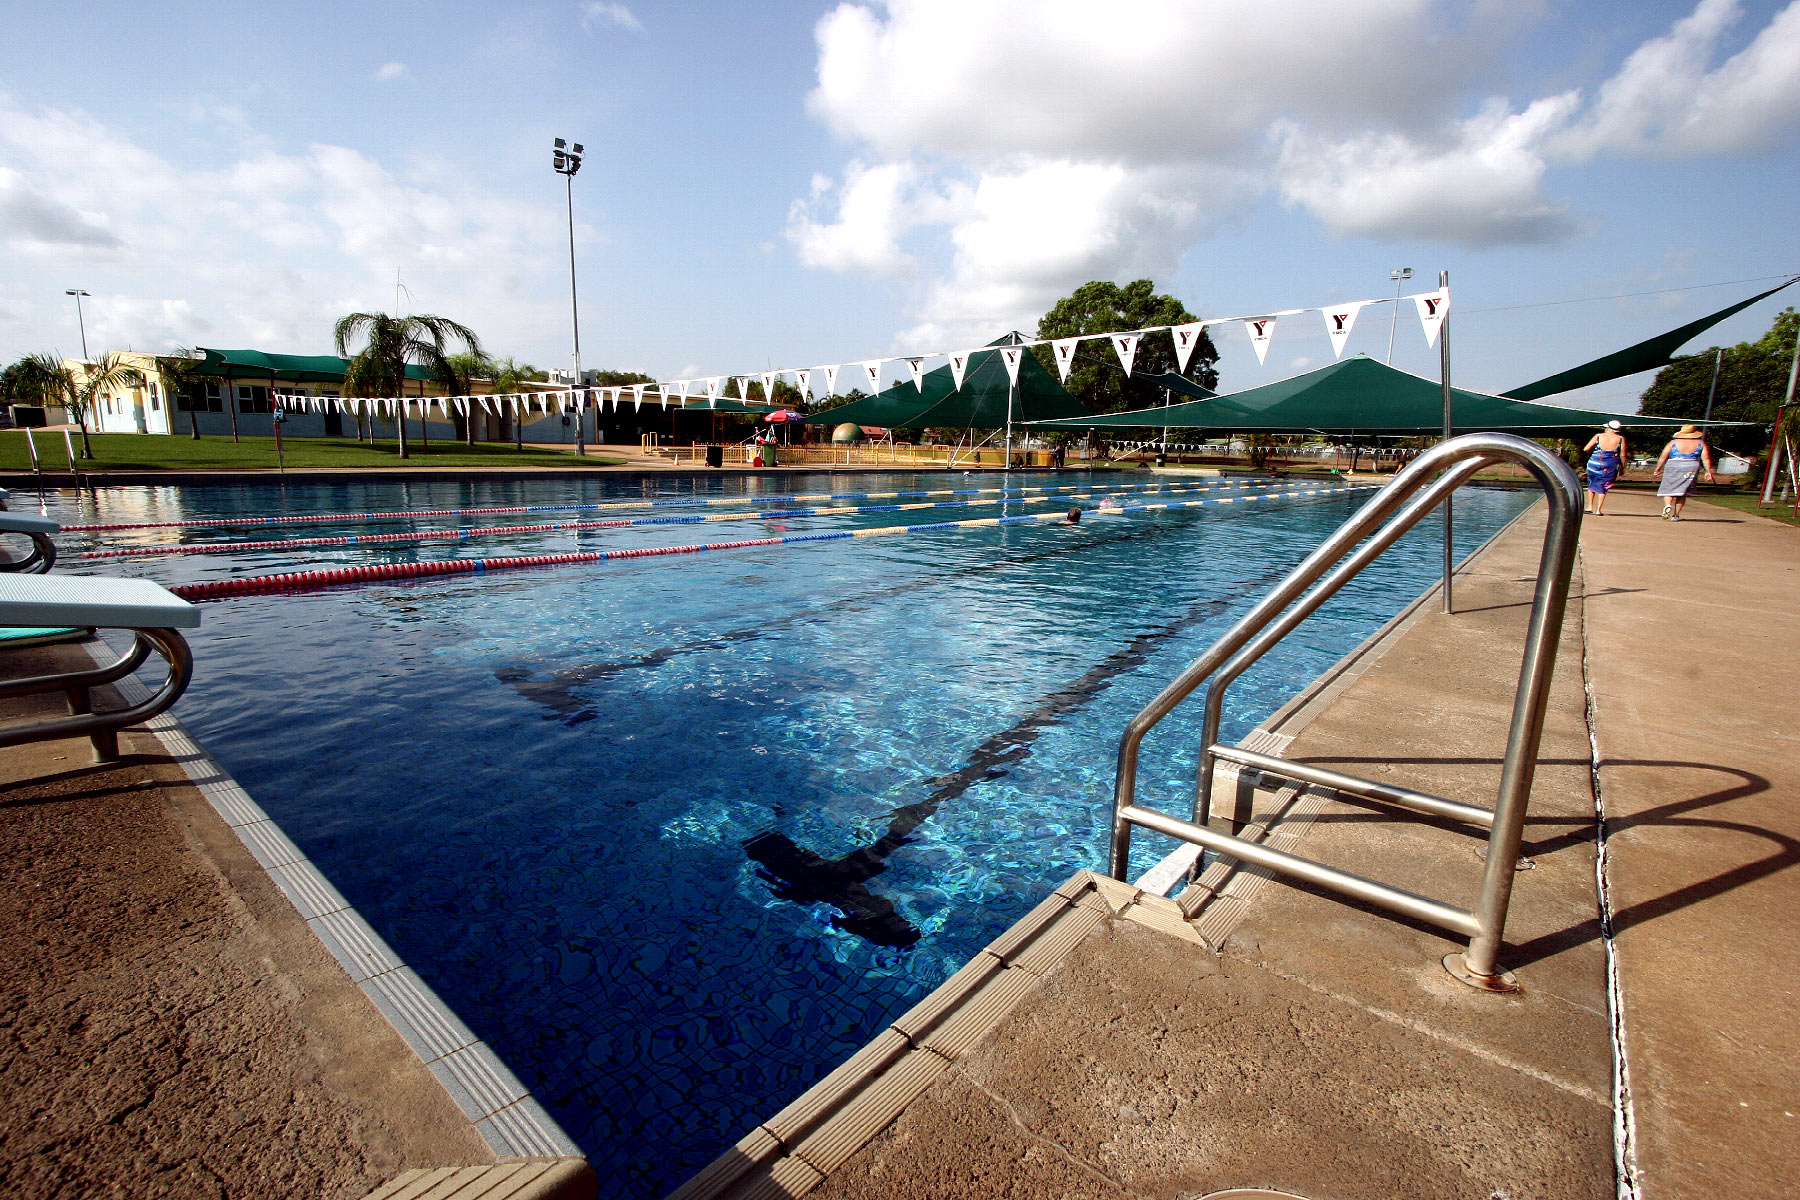 Palmerston Swimming and Fitness Centre